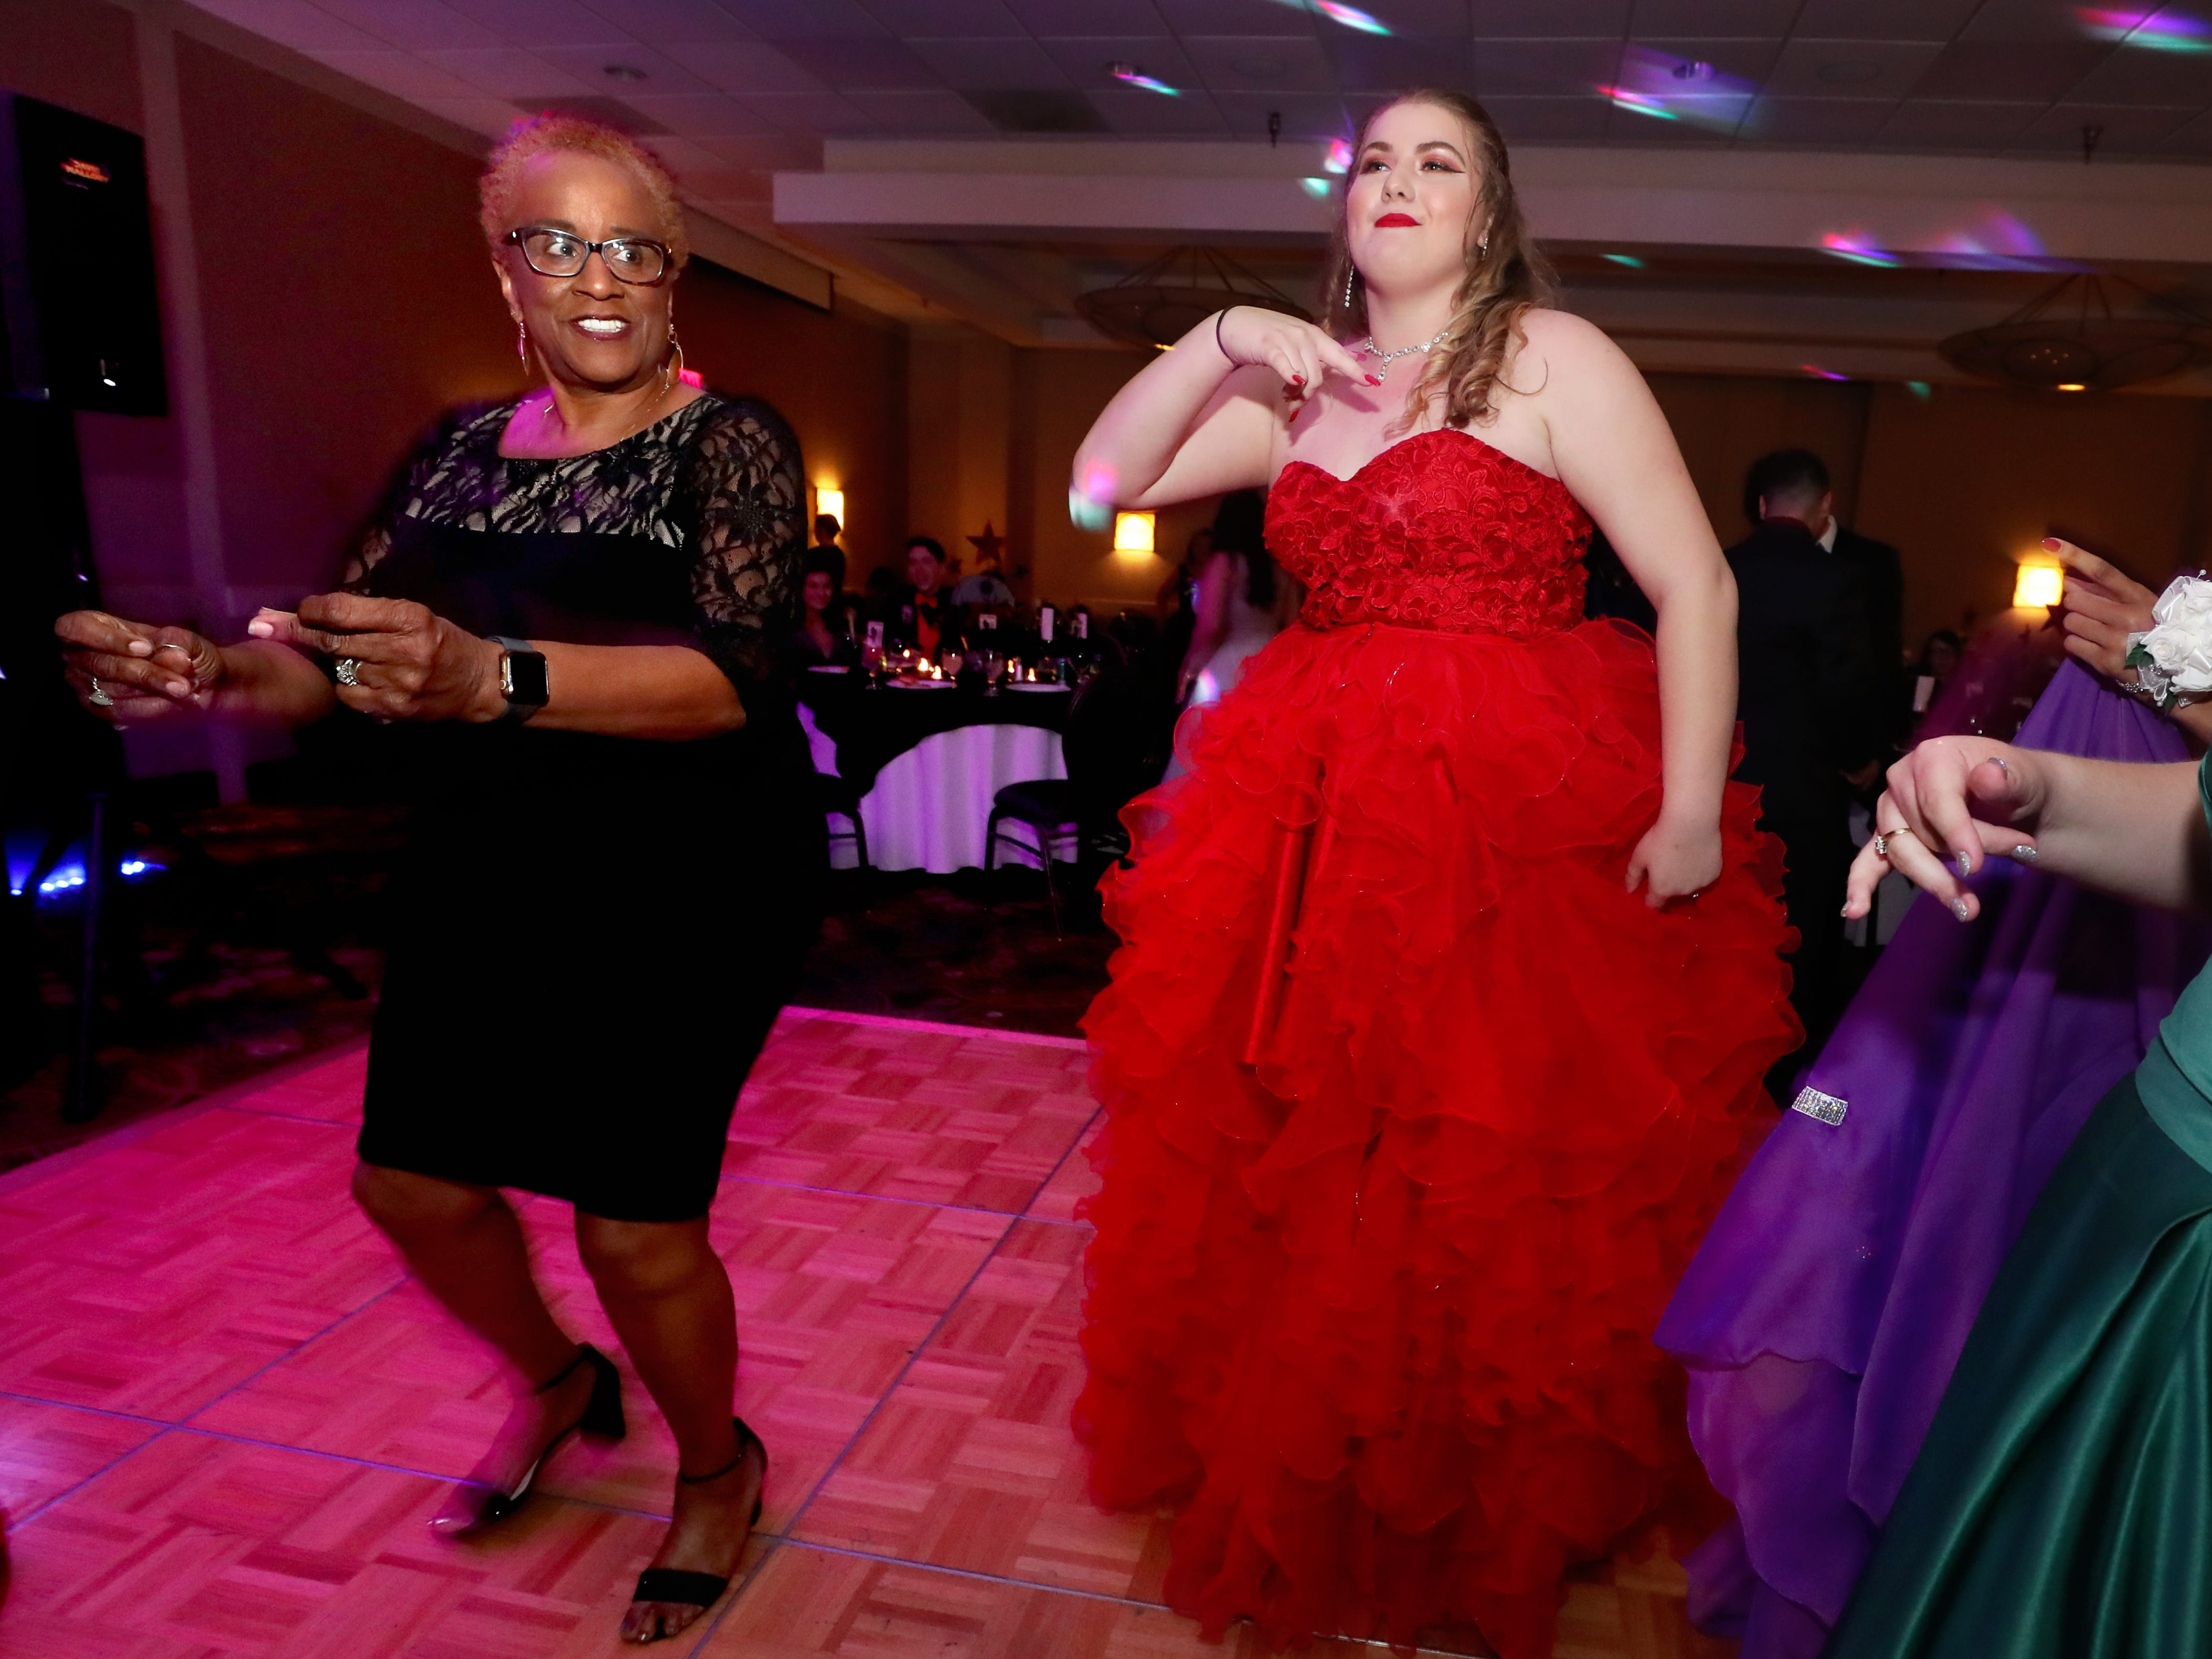 Holloway Principal Sumatra Drayton, left and Cortney Springer, right dance on the dance floor at Holloway's prom at the DoubleTree on Thursday April 18, 2019.